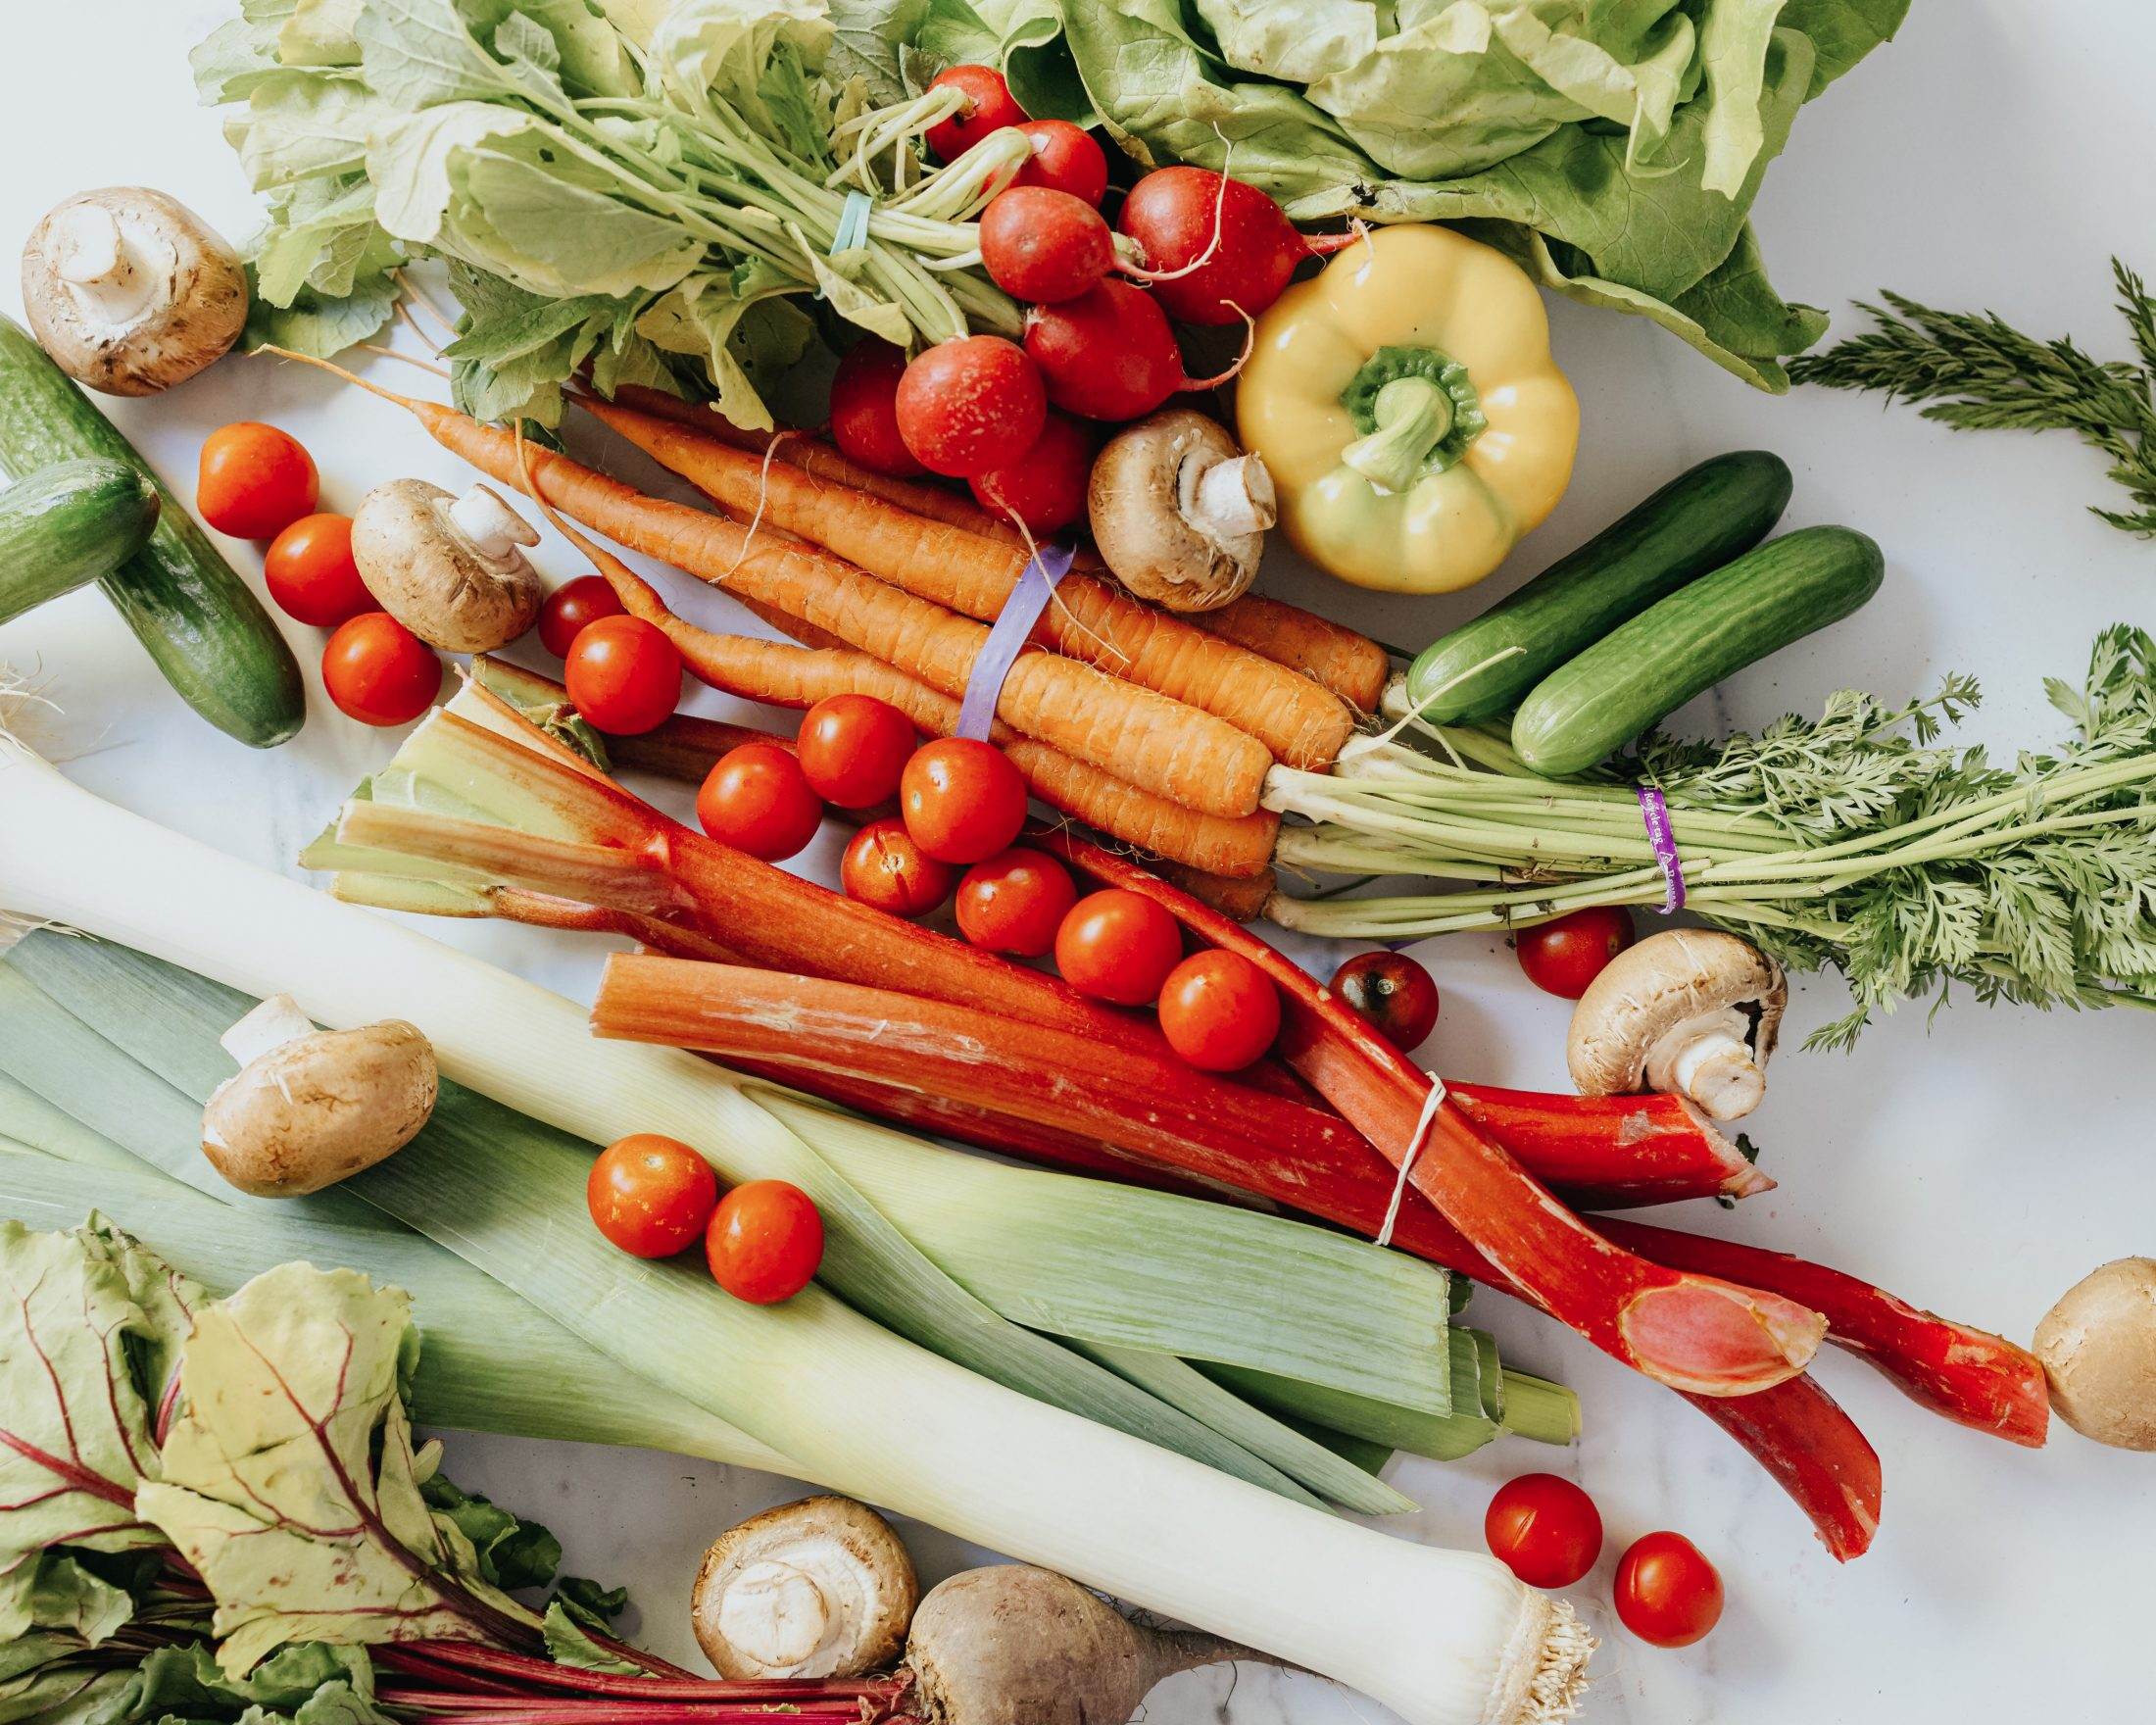 Local fresh vegetables from SPUD